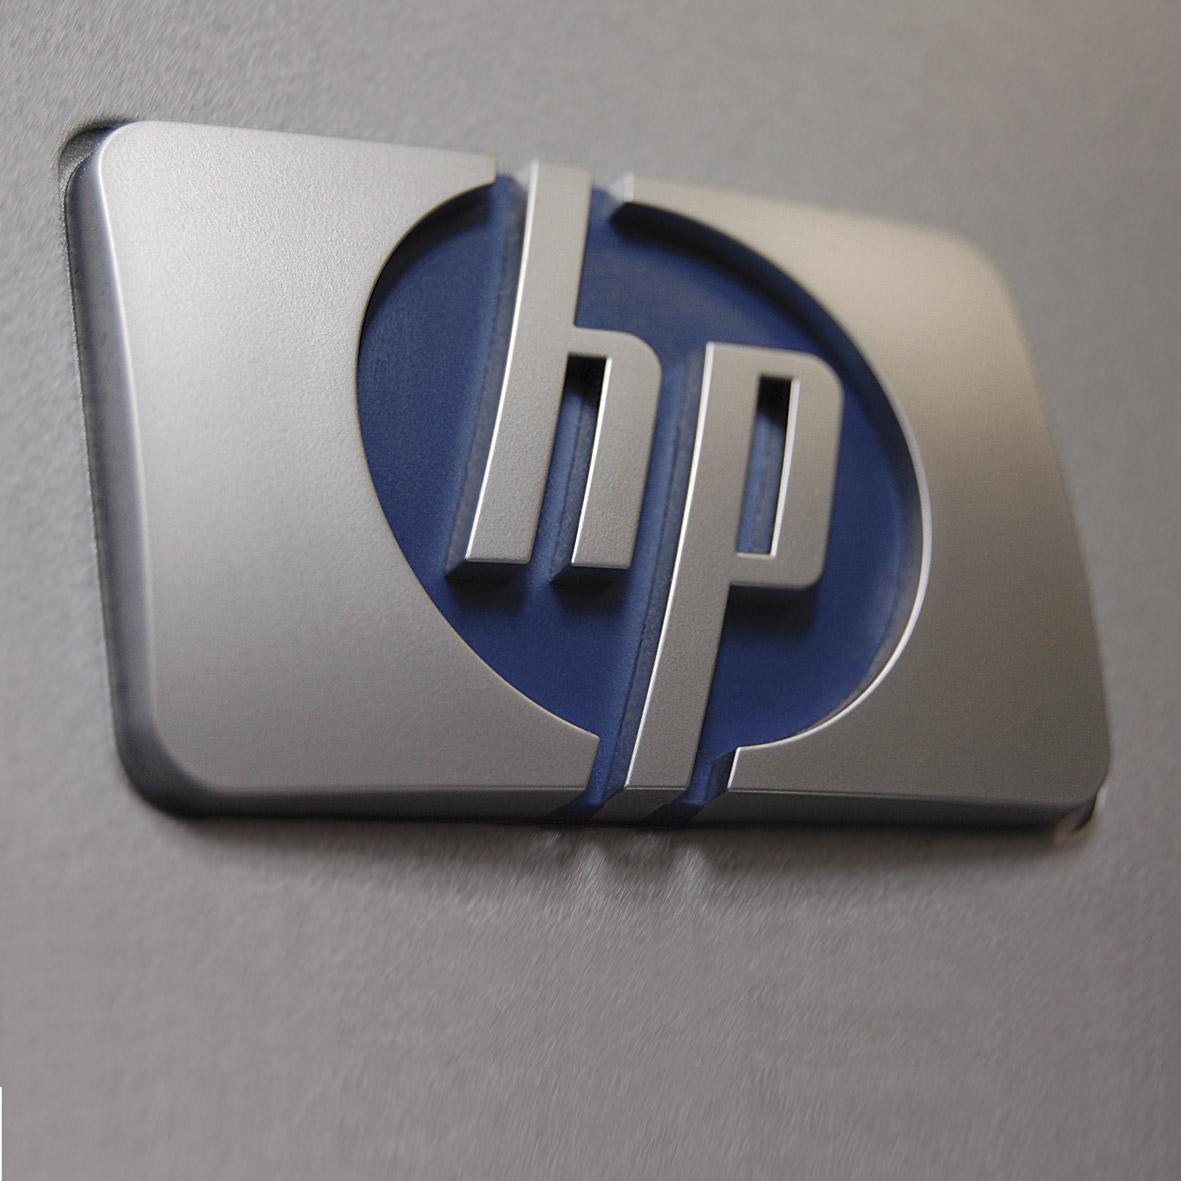 Nieuwe Airprint Partner: HP